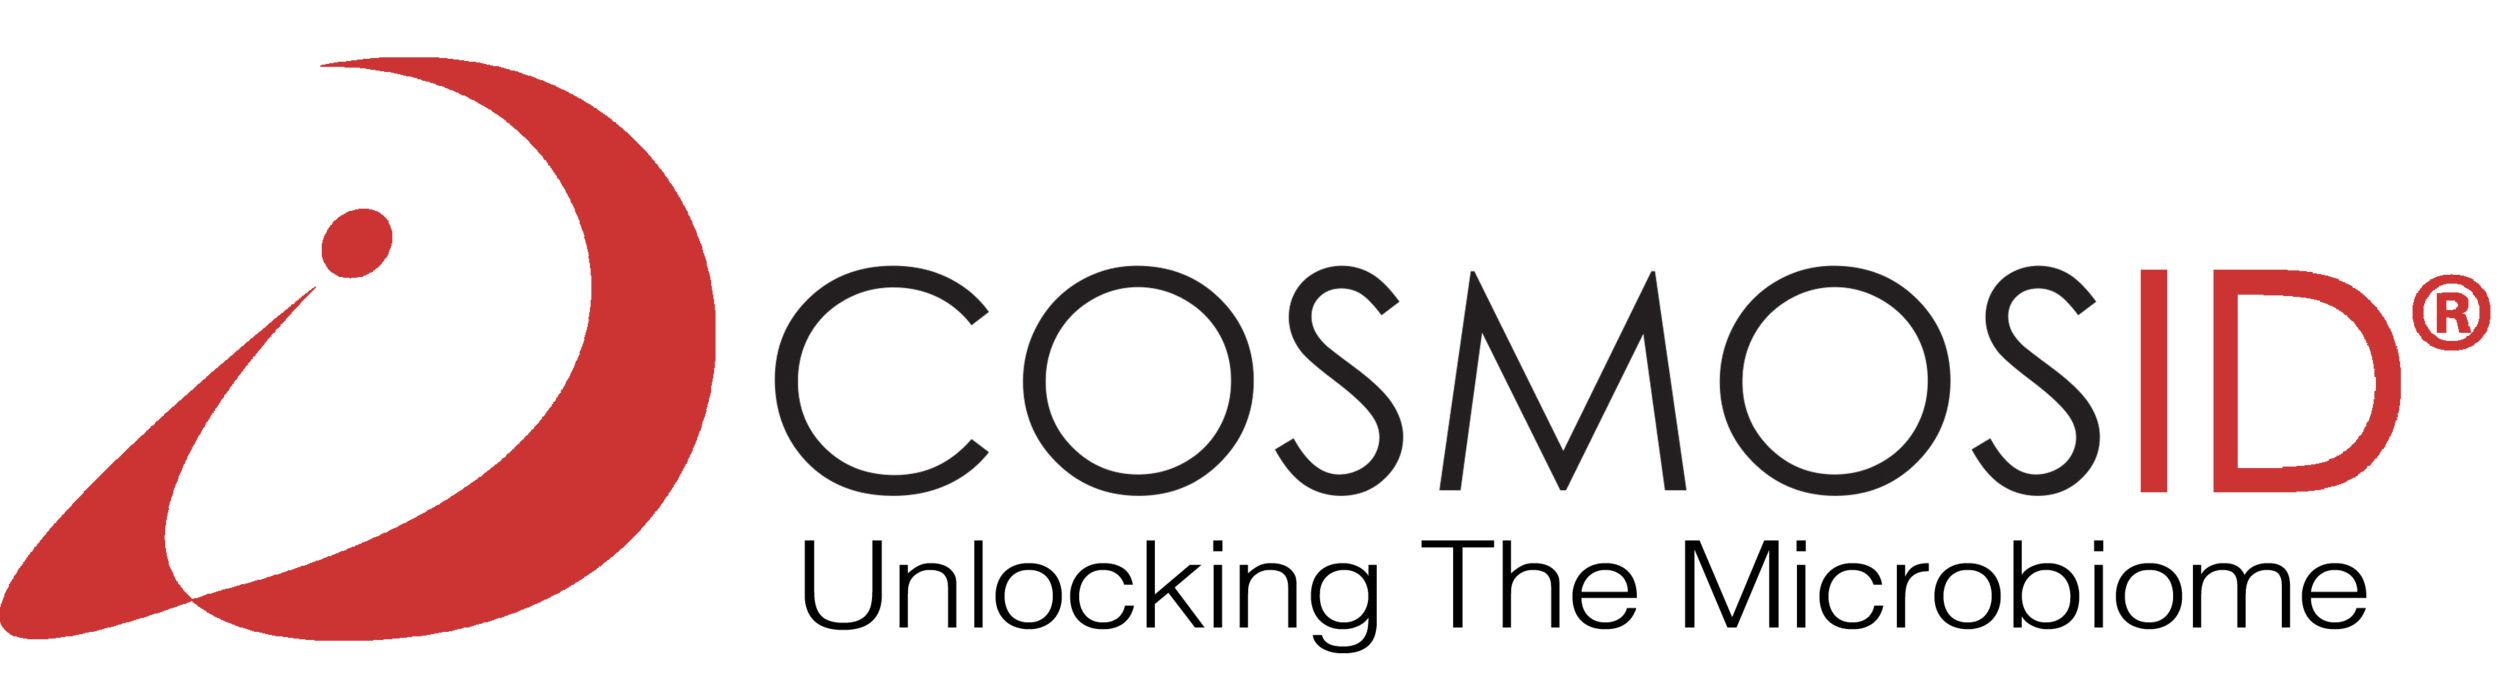 logo_with_tagline.png